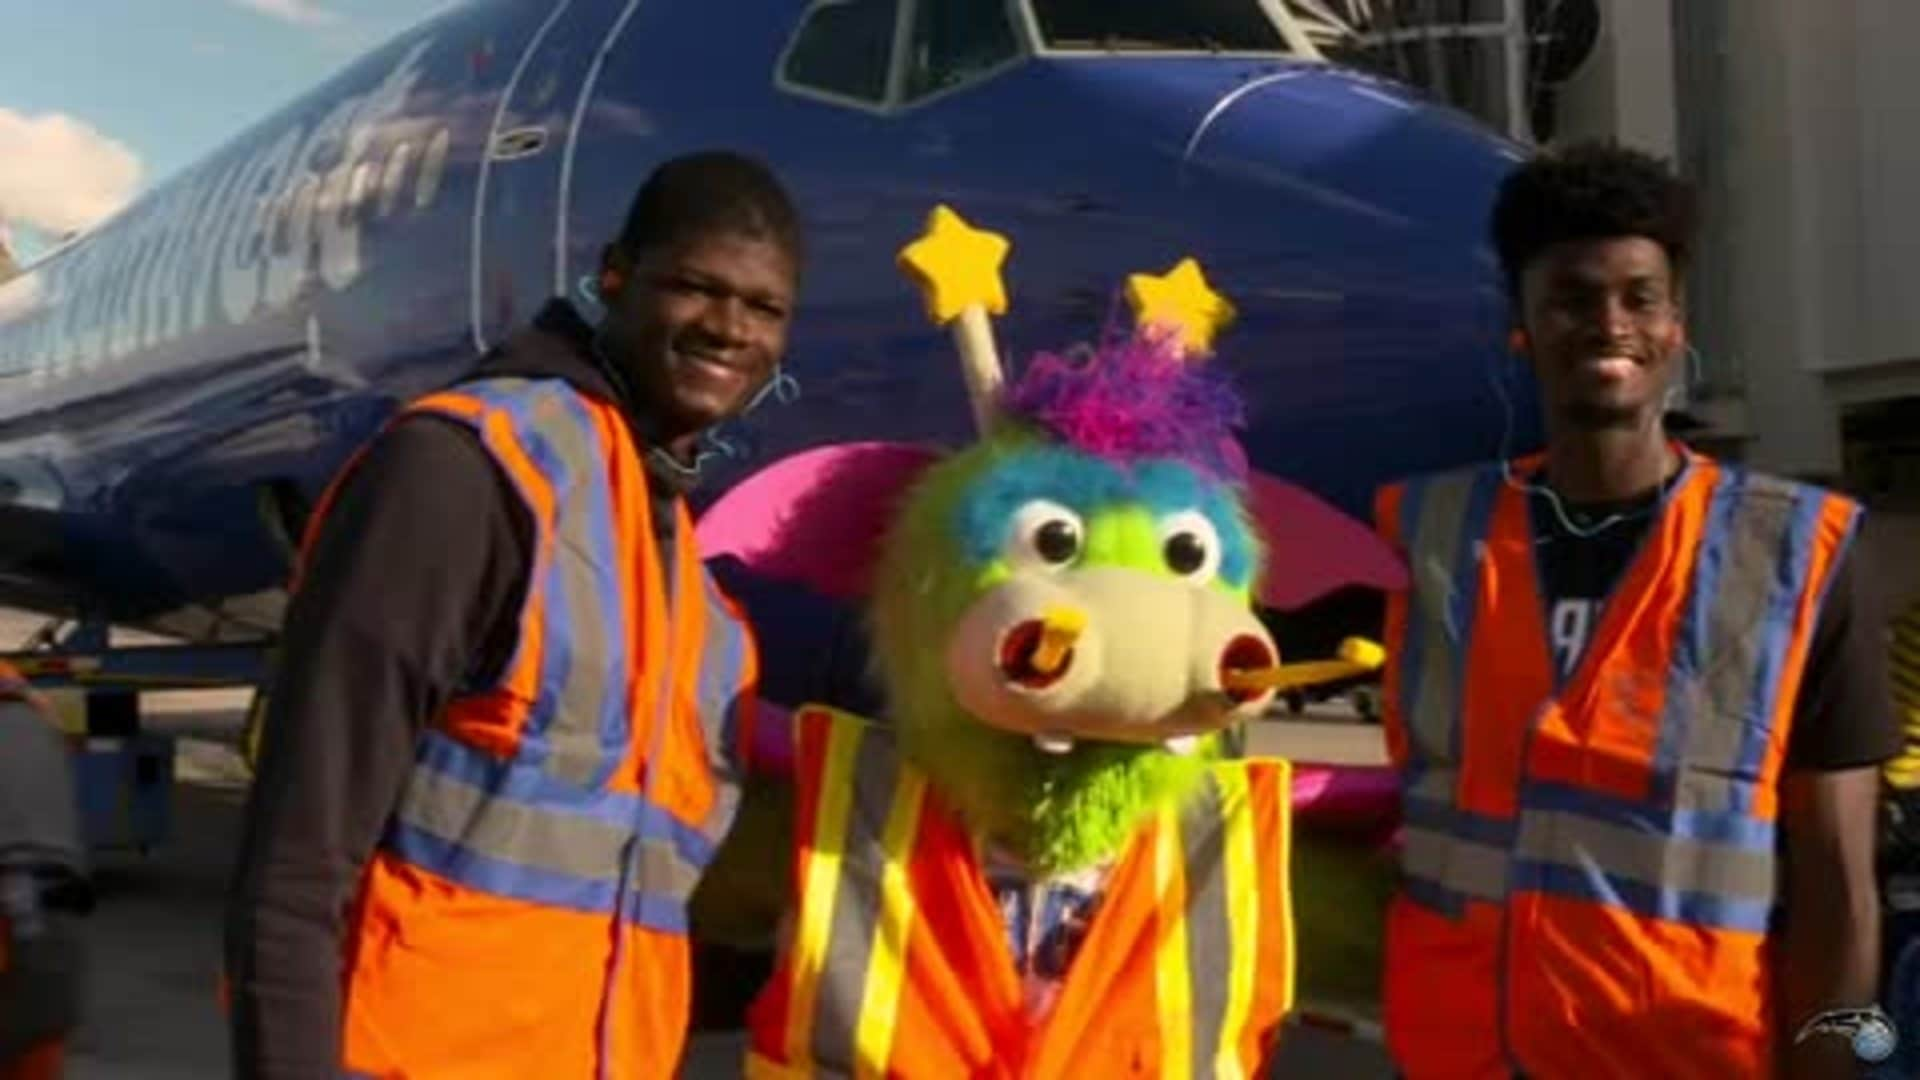 Isaac and Bamba Team Up With Southwest Airlines to Celebrate Partnership